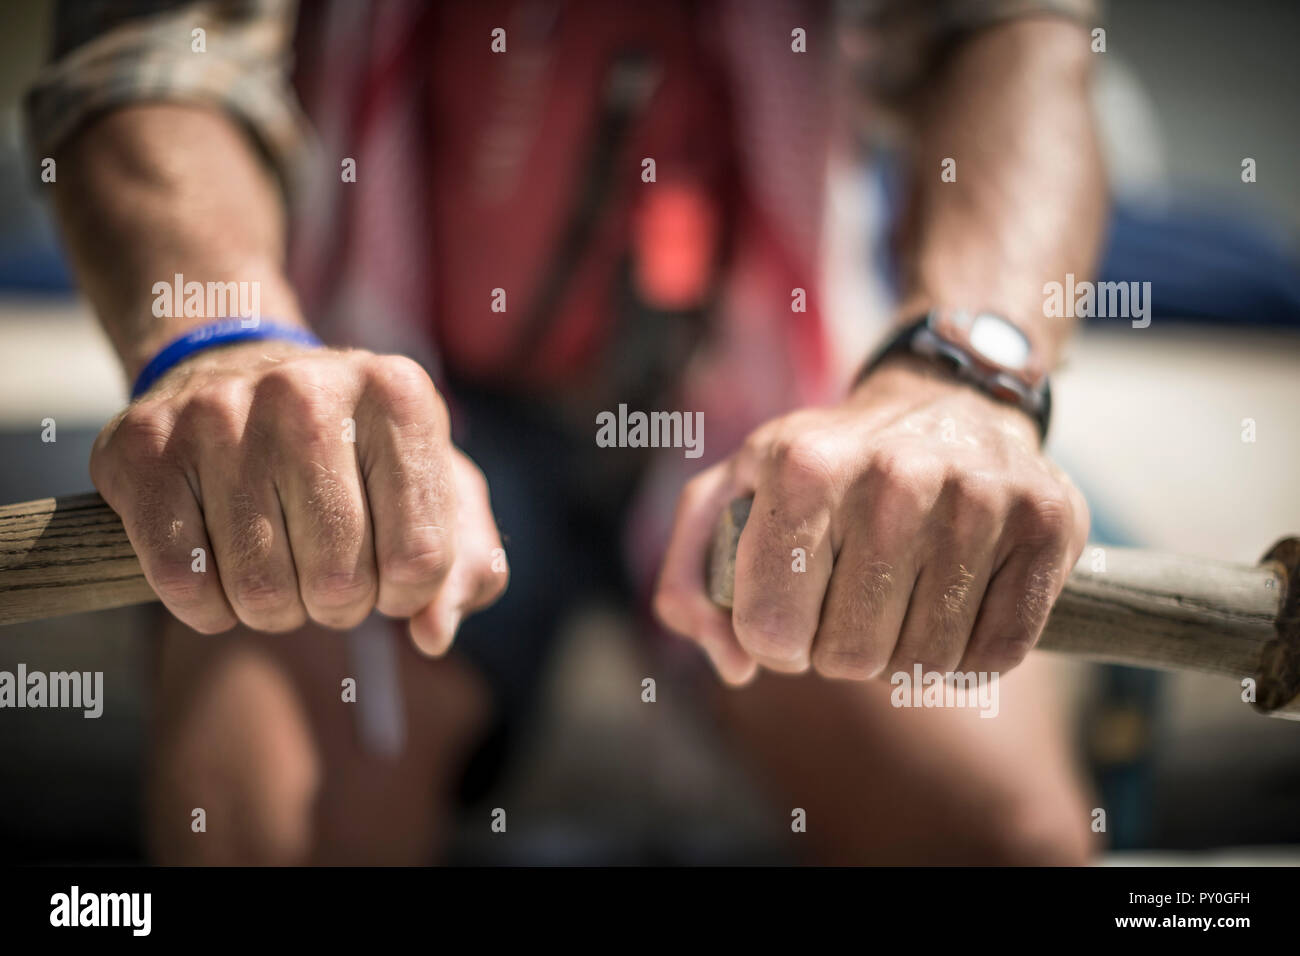 Close-up of mans hands gripping oars of inflatable raft, Desolation/Gray Canyon section, Utah, USA - Stock Image